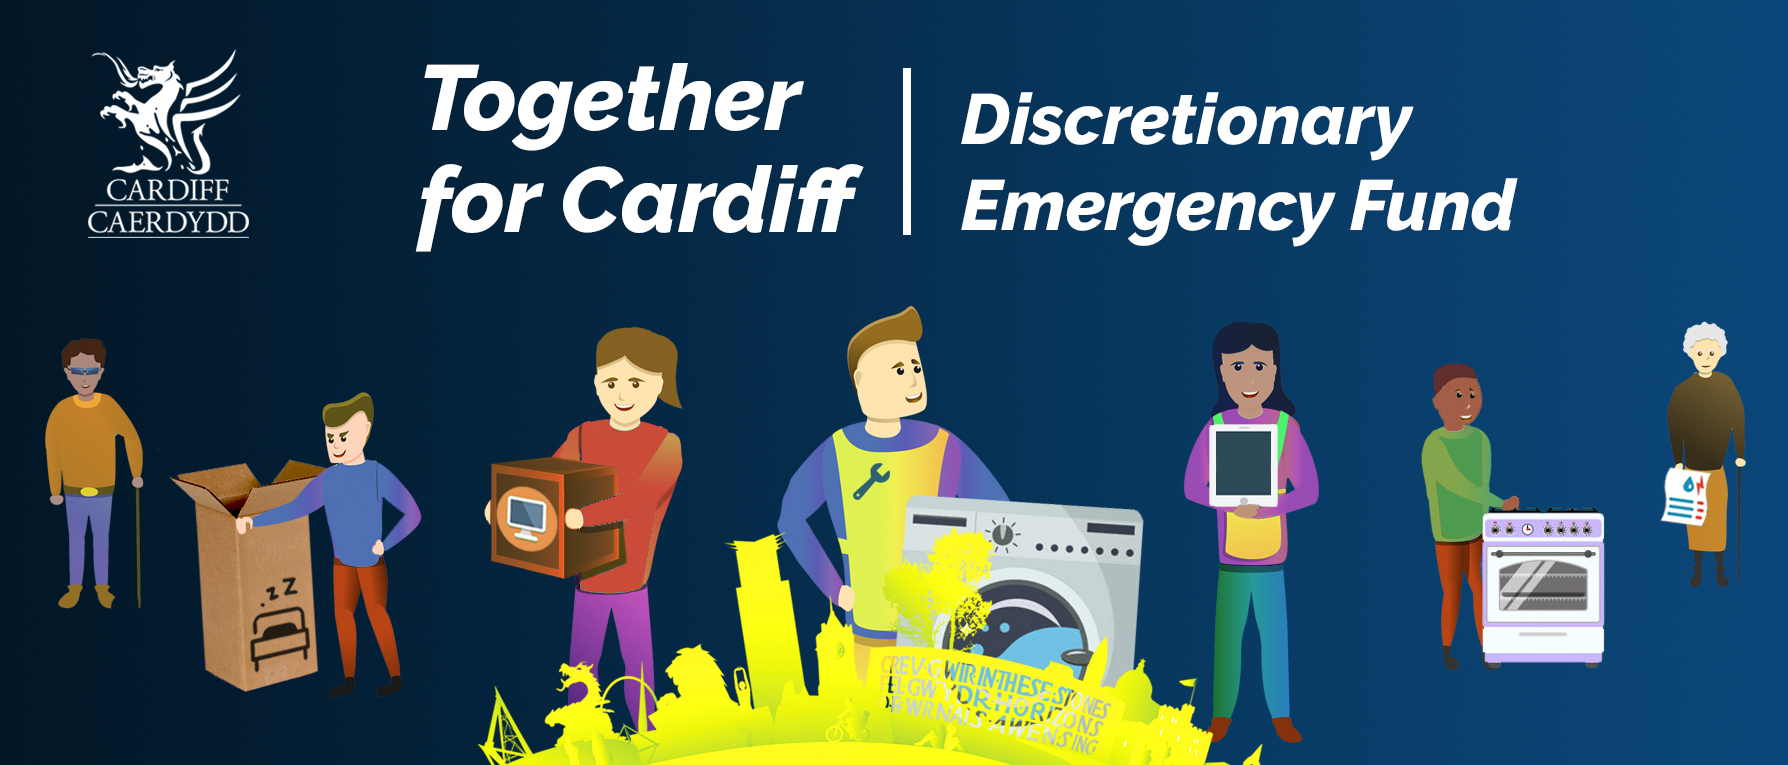 Together for Cardiff Emergency Fund launched for residents in need